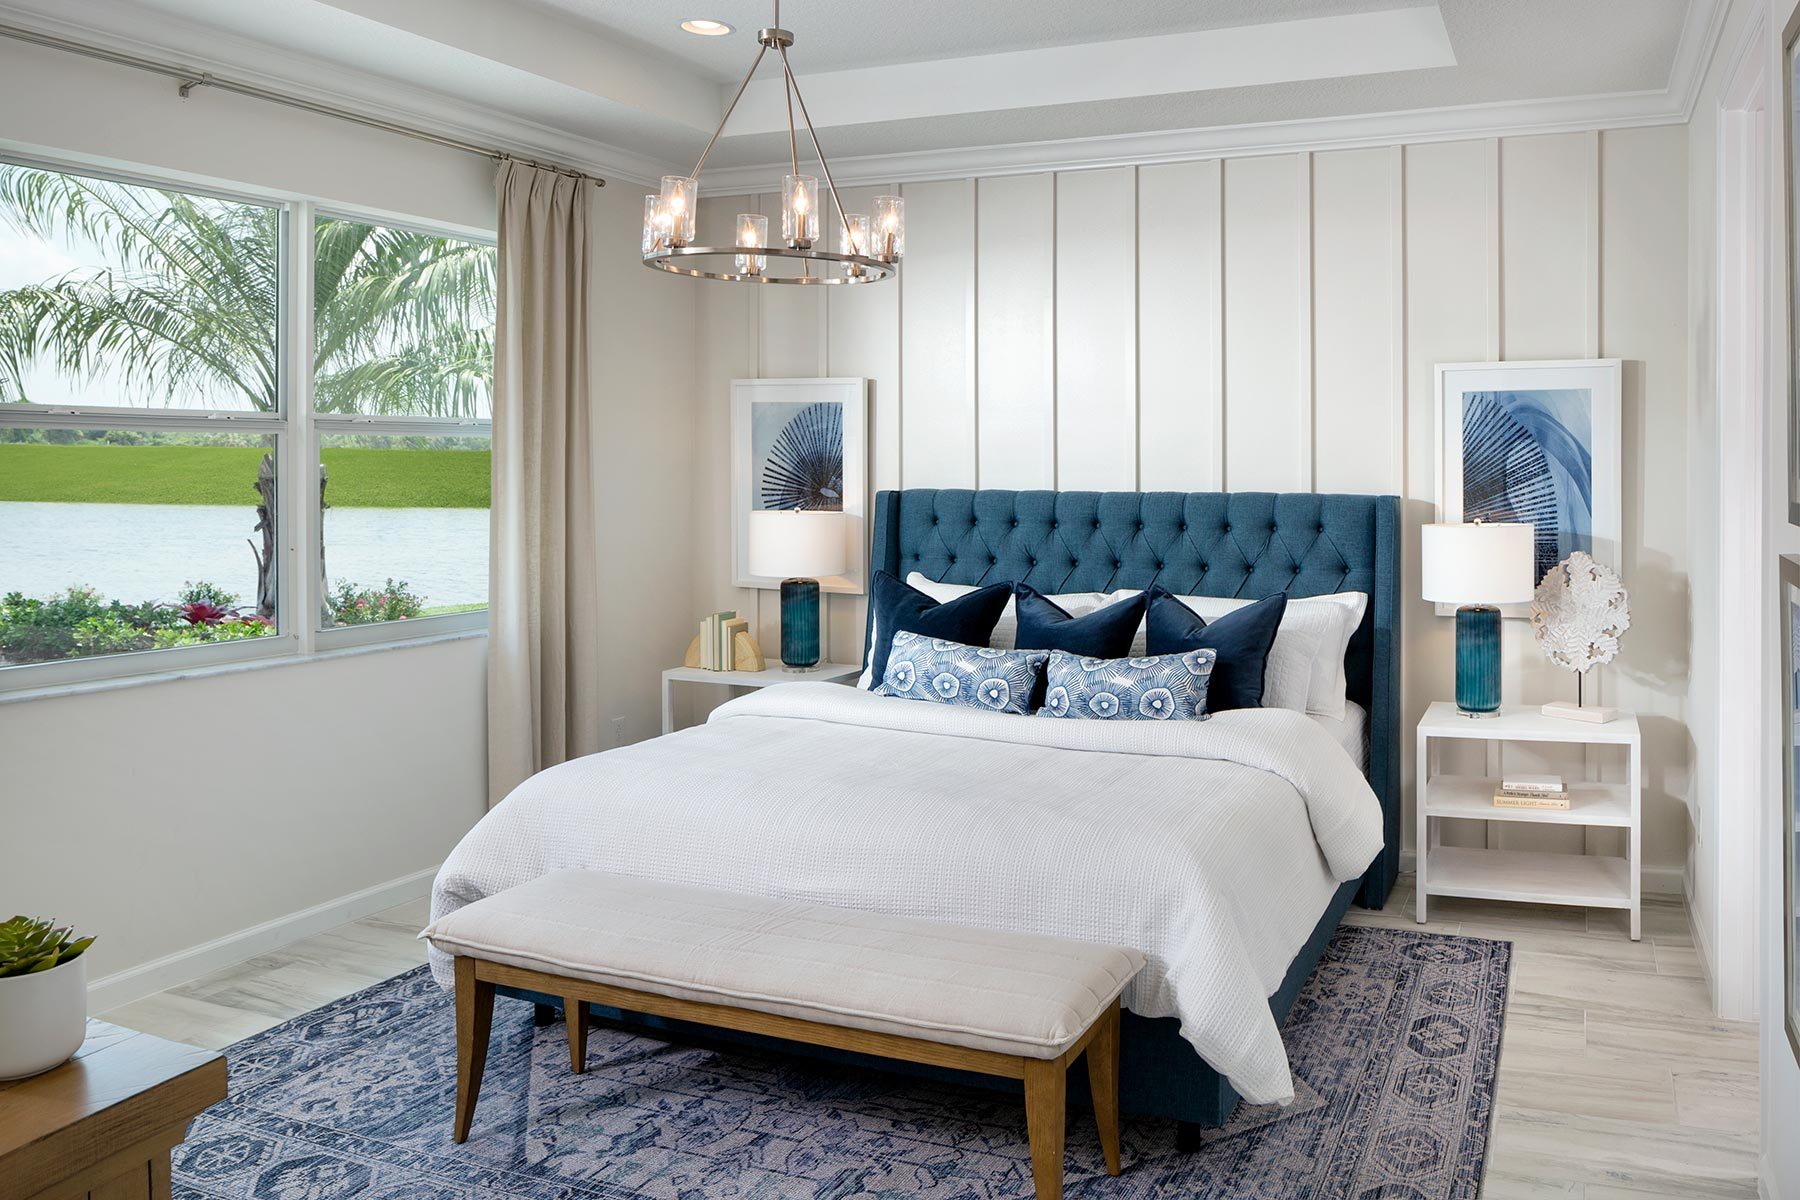 Tradition - Manderlie Bedroom in Port St. Lucie Florida by Mattamy Homes